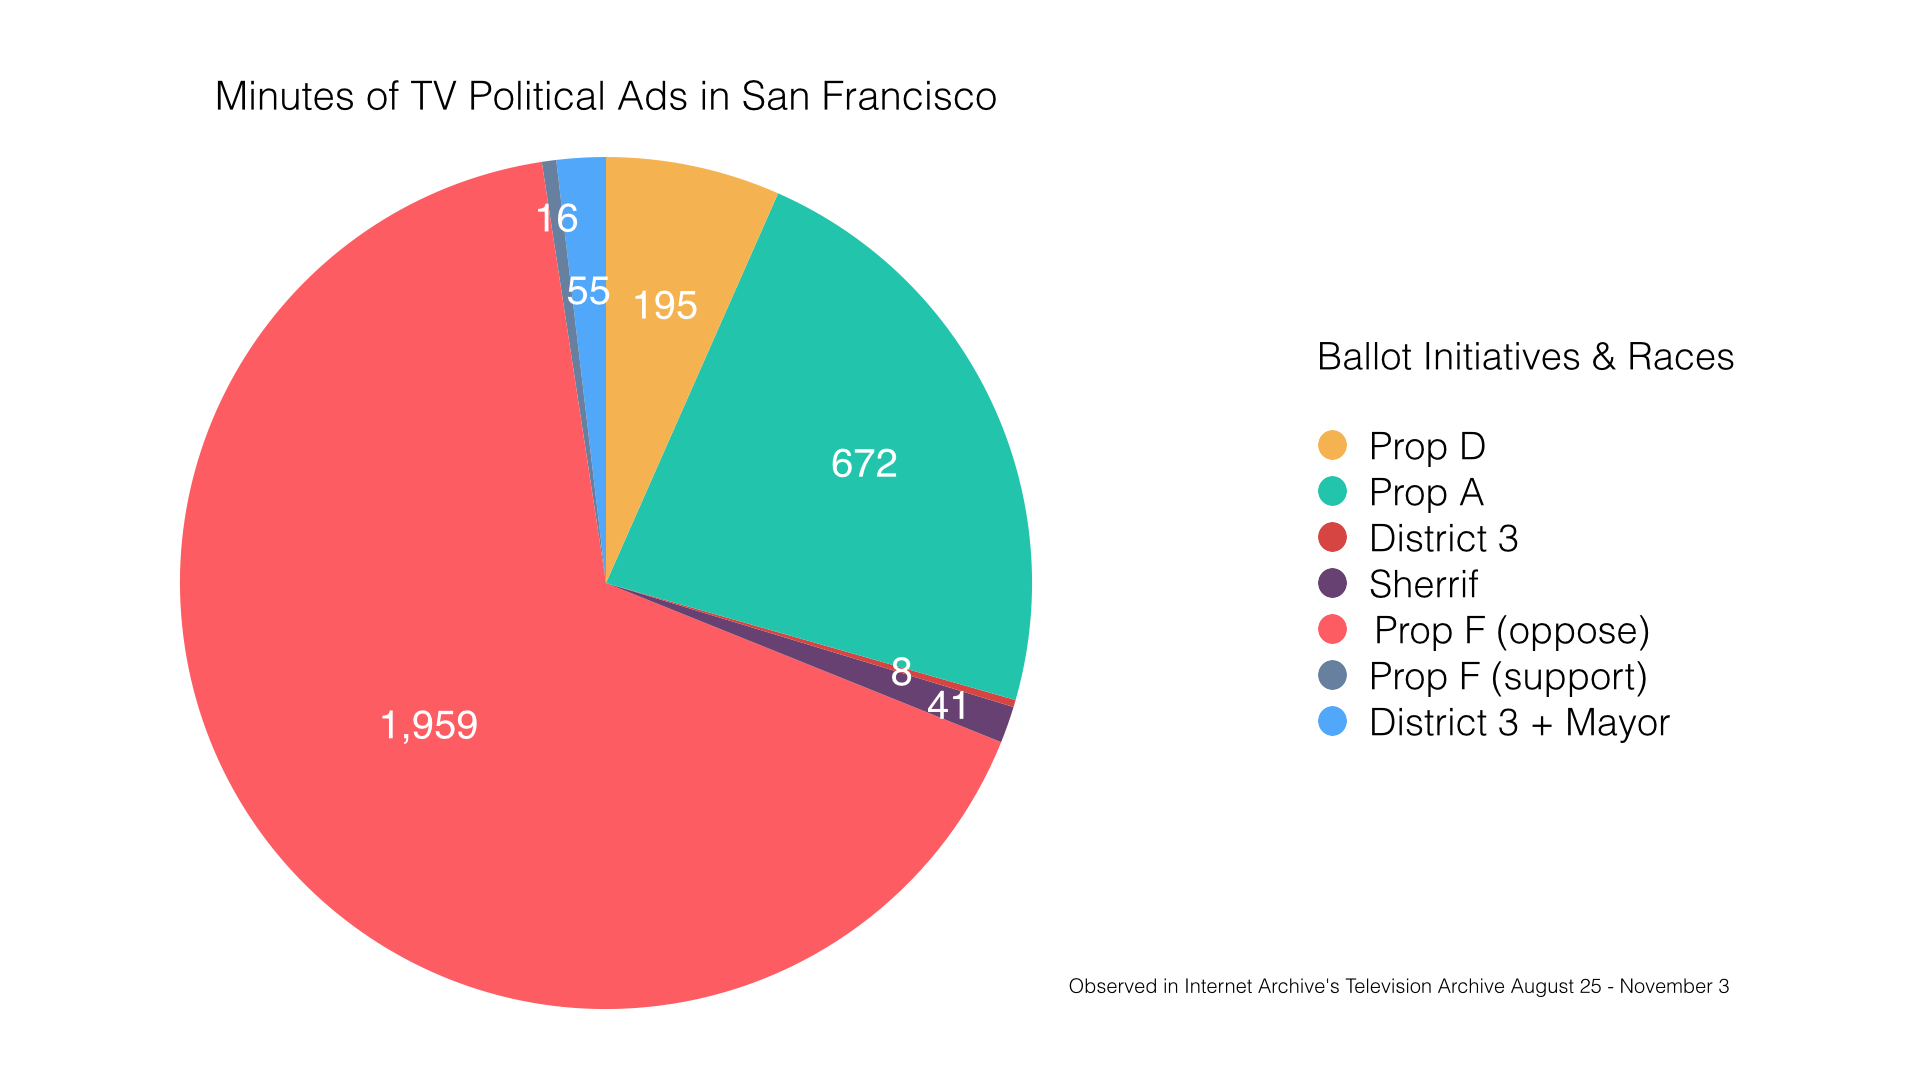 Pro-Airbnb advertising dominated recent political TV ads in San